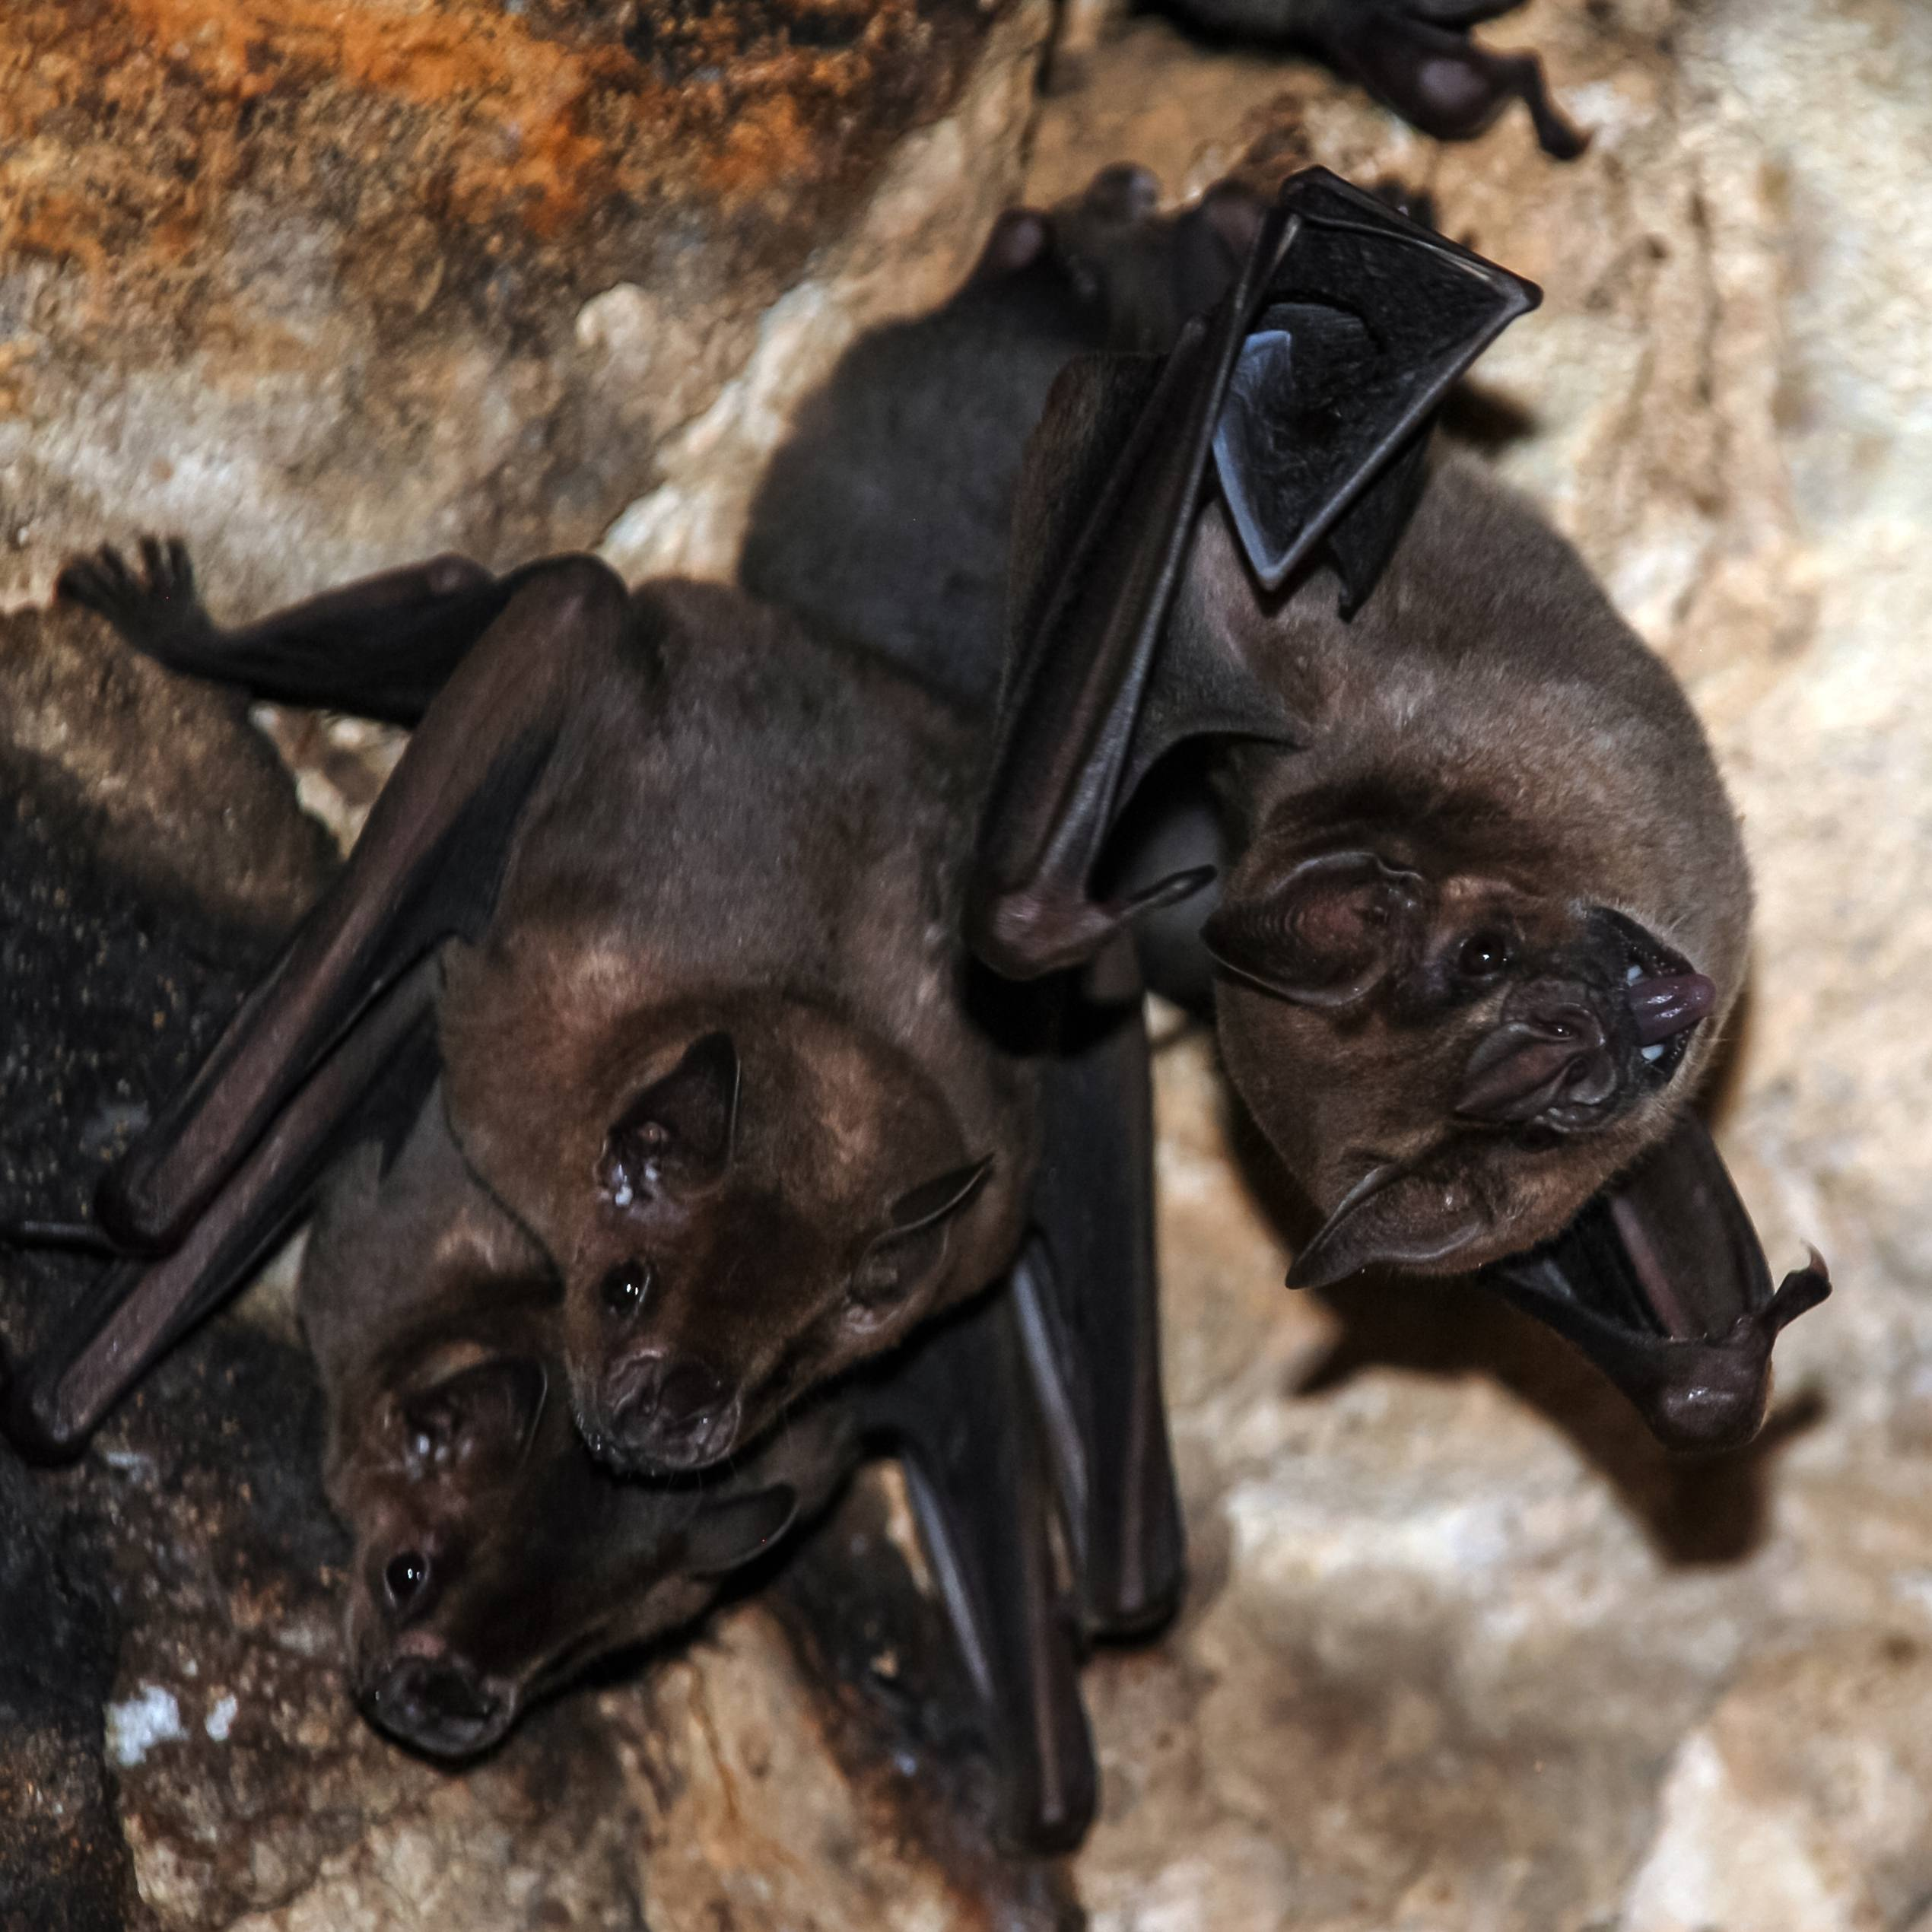 a group or a colony of bats hanging in a cave